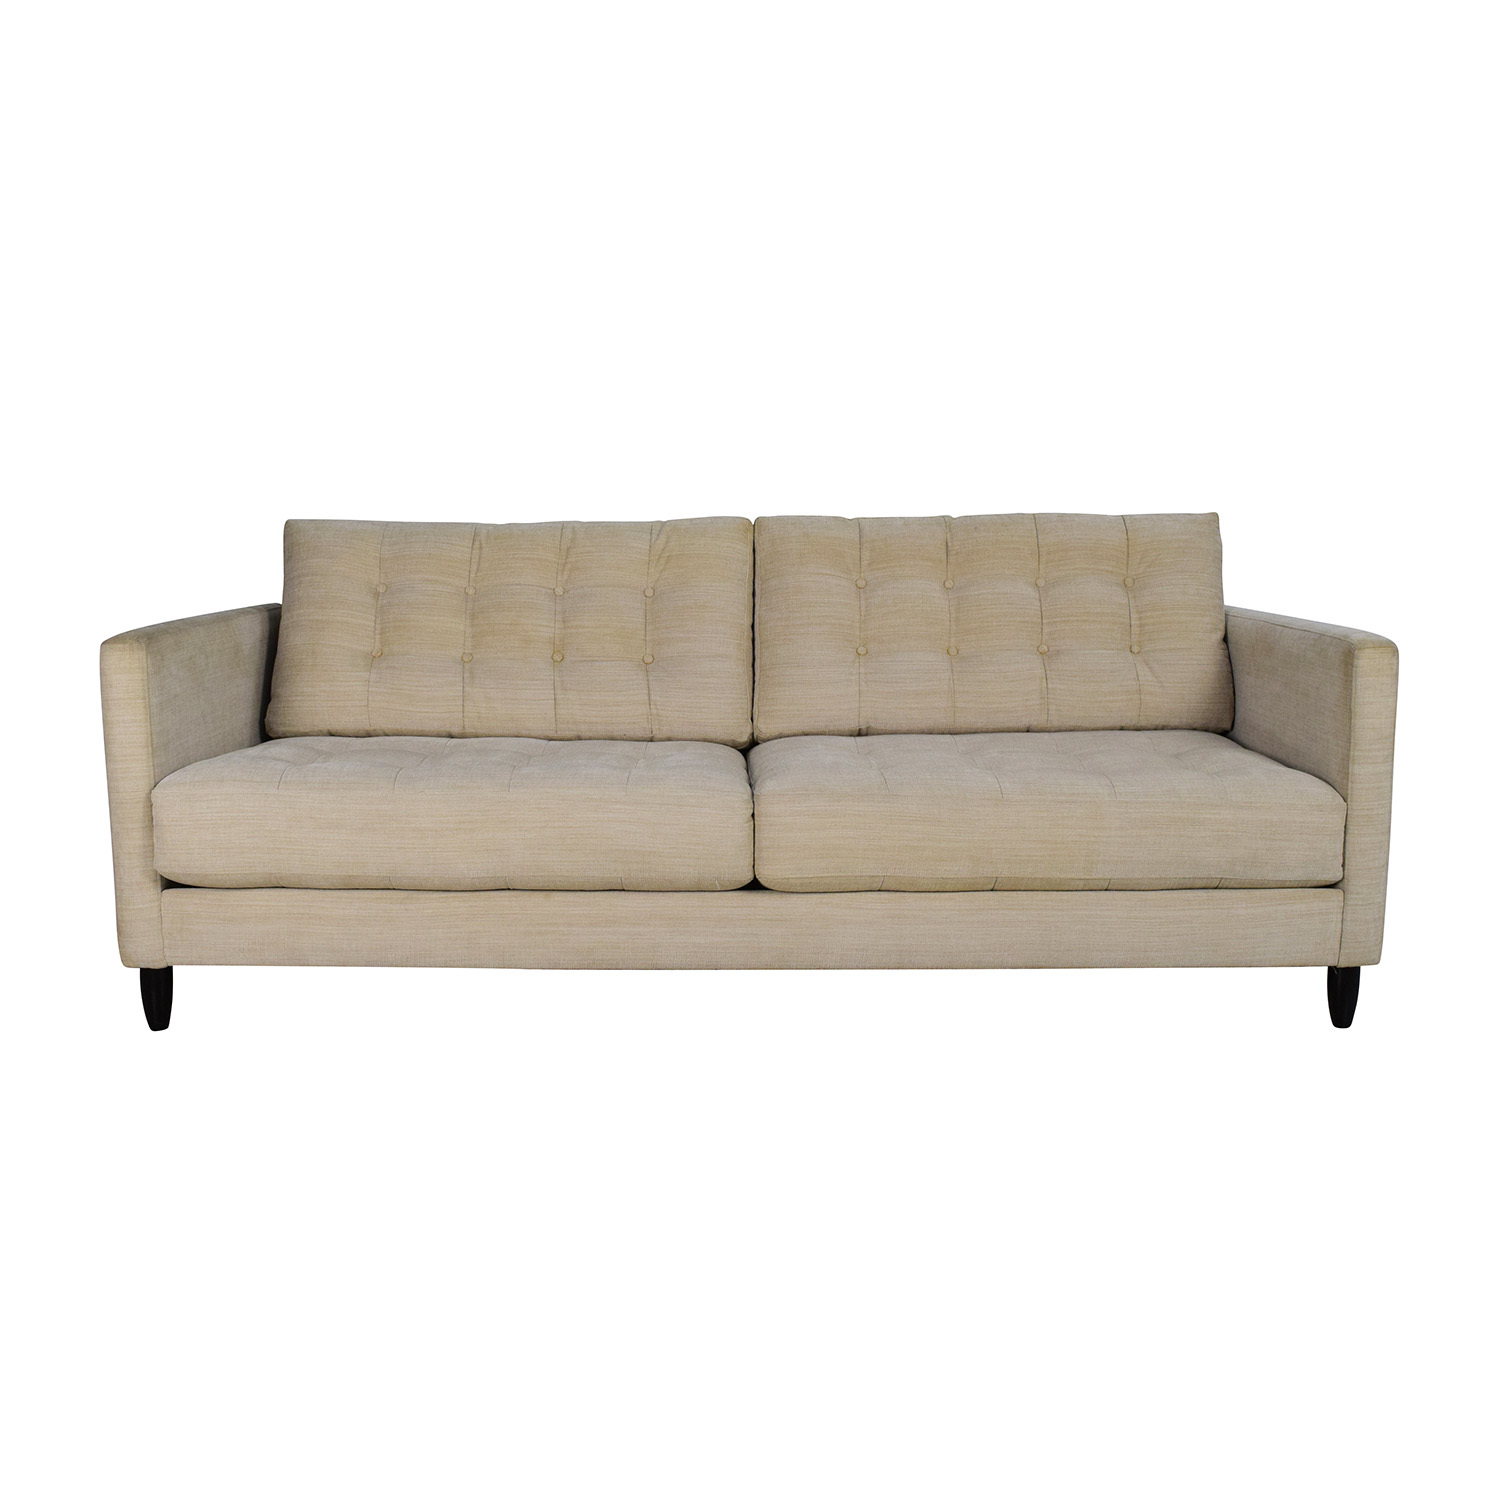 72% OFF - Macy\'s Macy\'s Beige Mid-Century Style Couch / Sofas